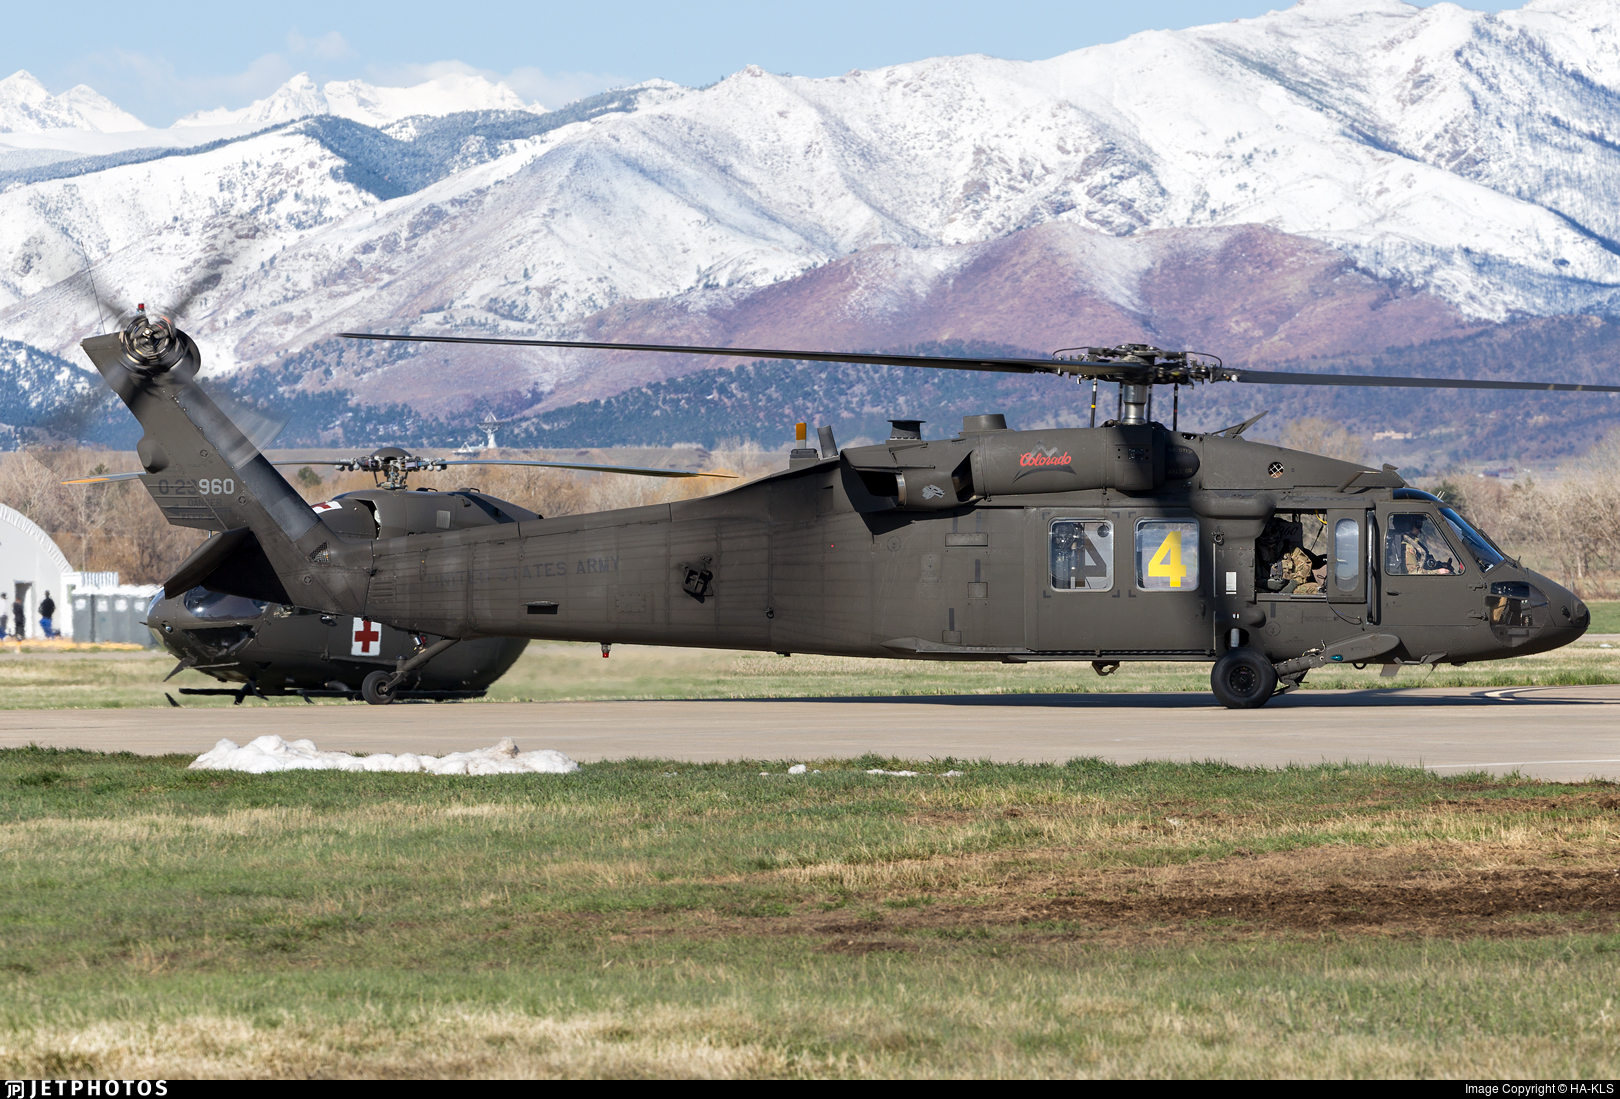 84-23960 - Sikorsky UH-60A Blackhawk - United States - US Army